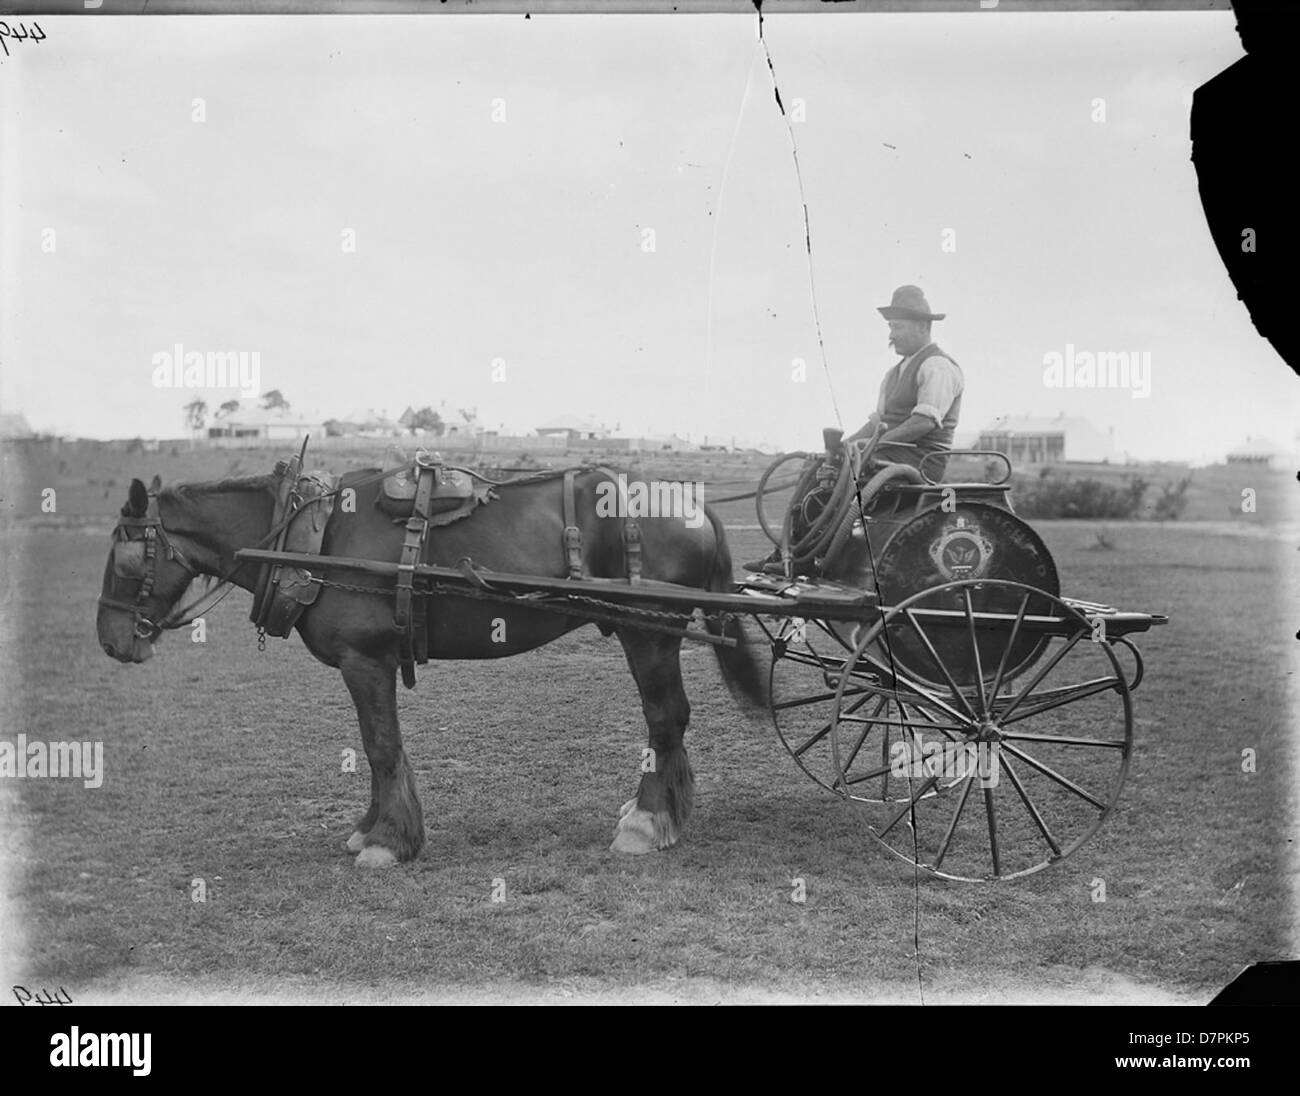 Clyde horsedrawn fire fighting cart with driver - Stock Image